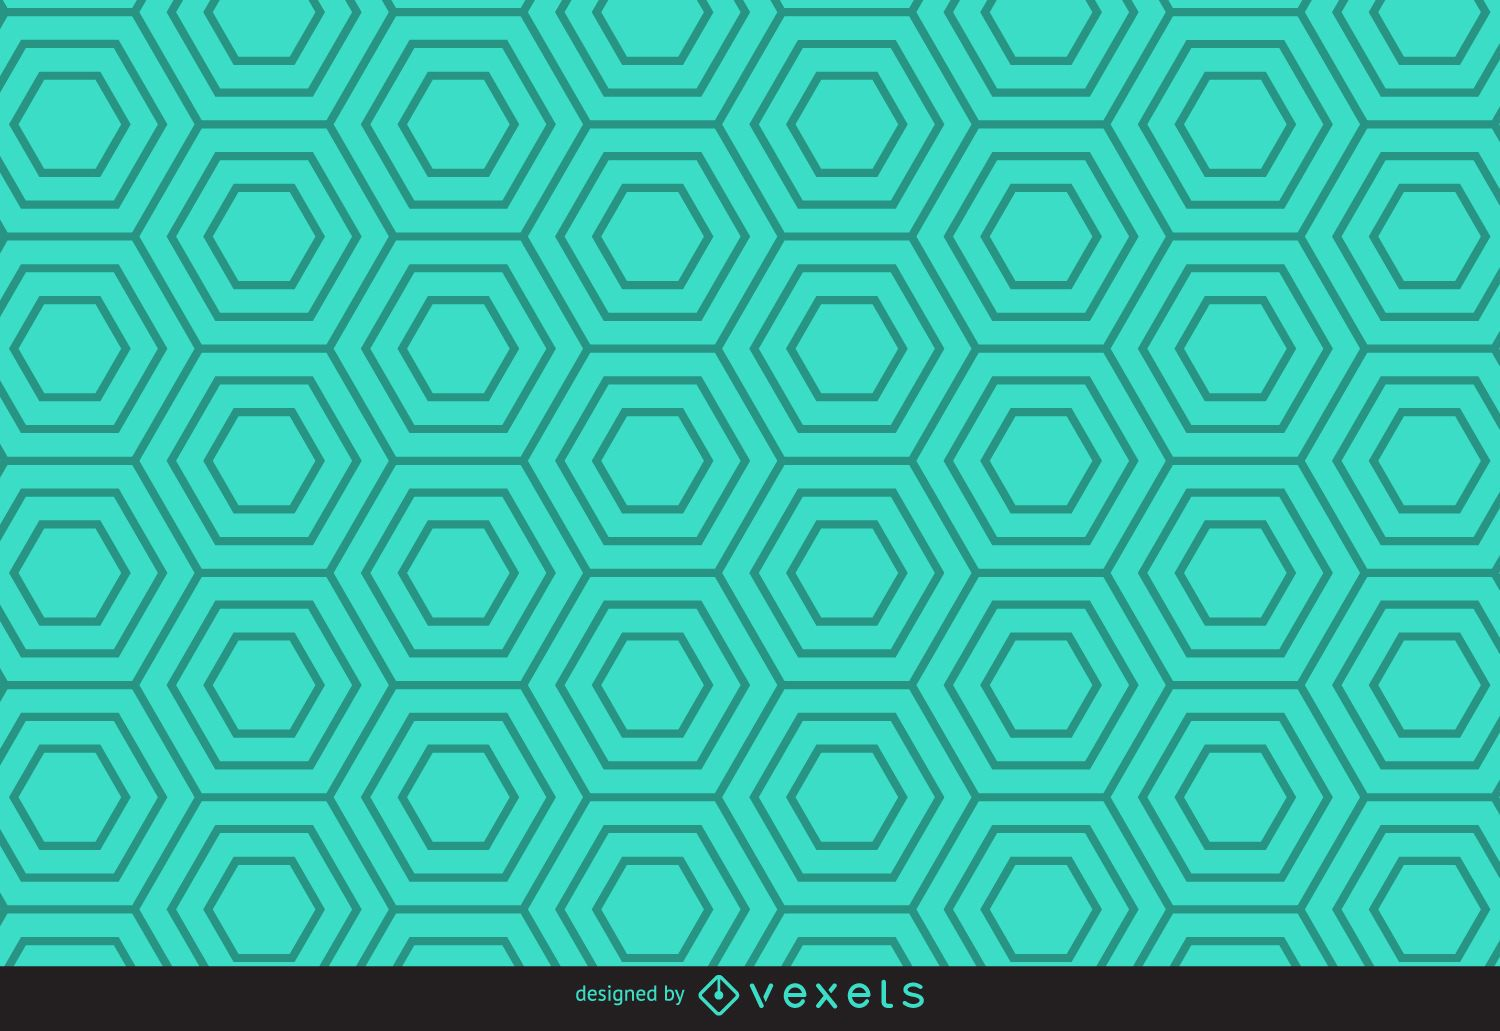 Green linear hexagonal pattern - Vector download